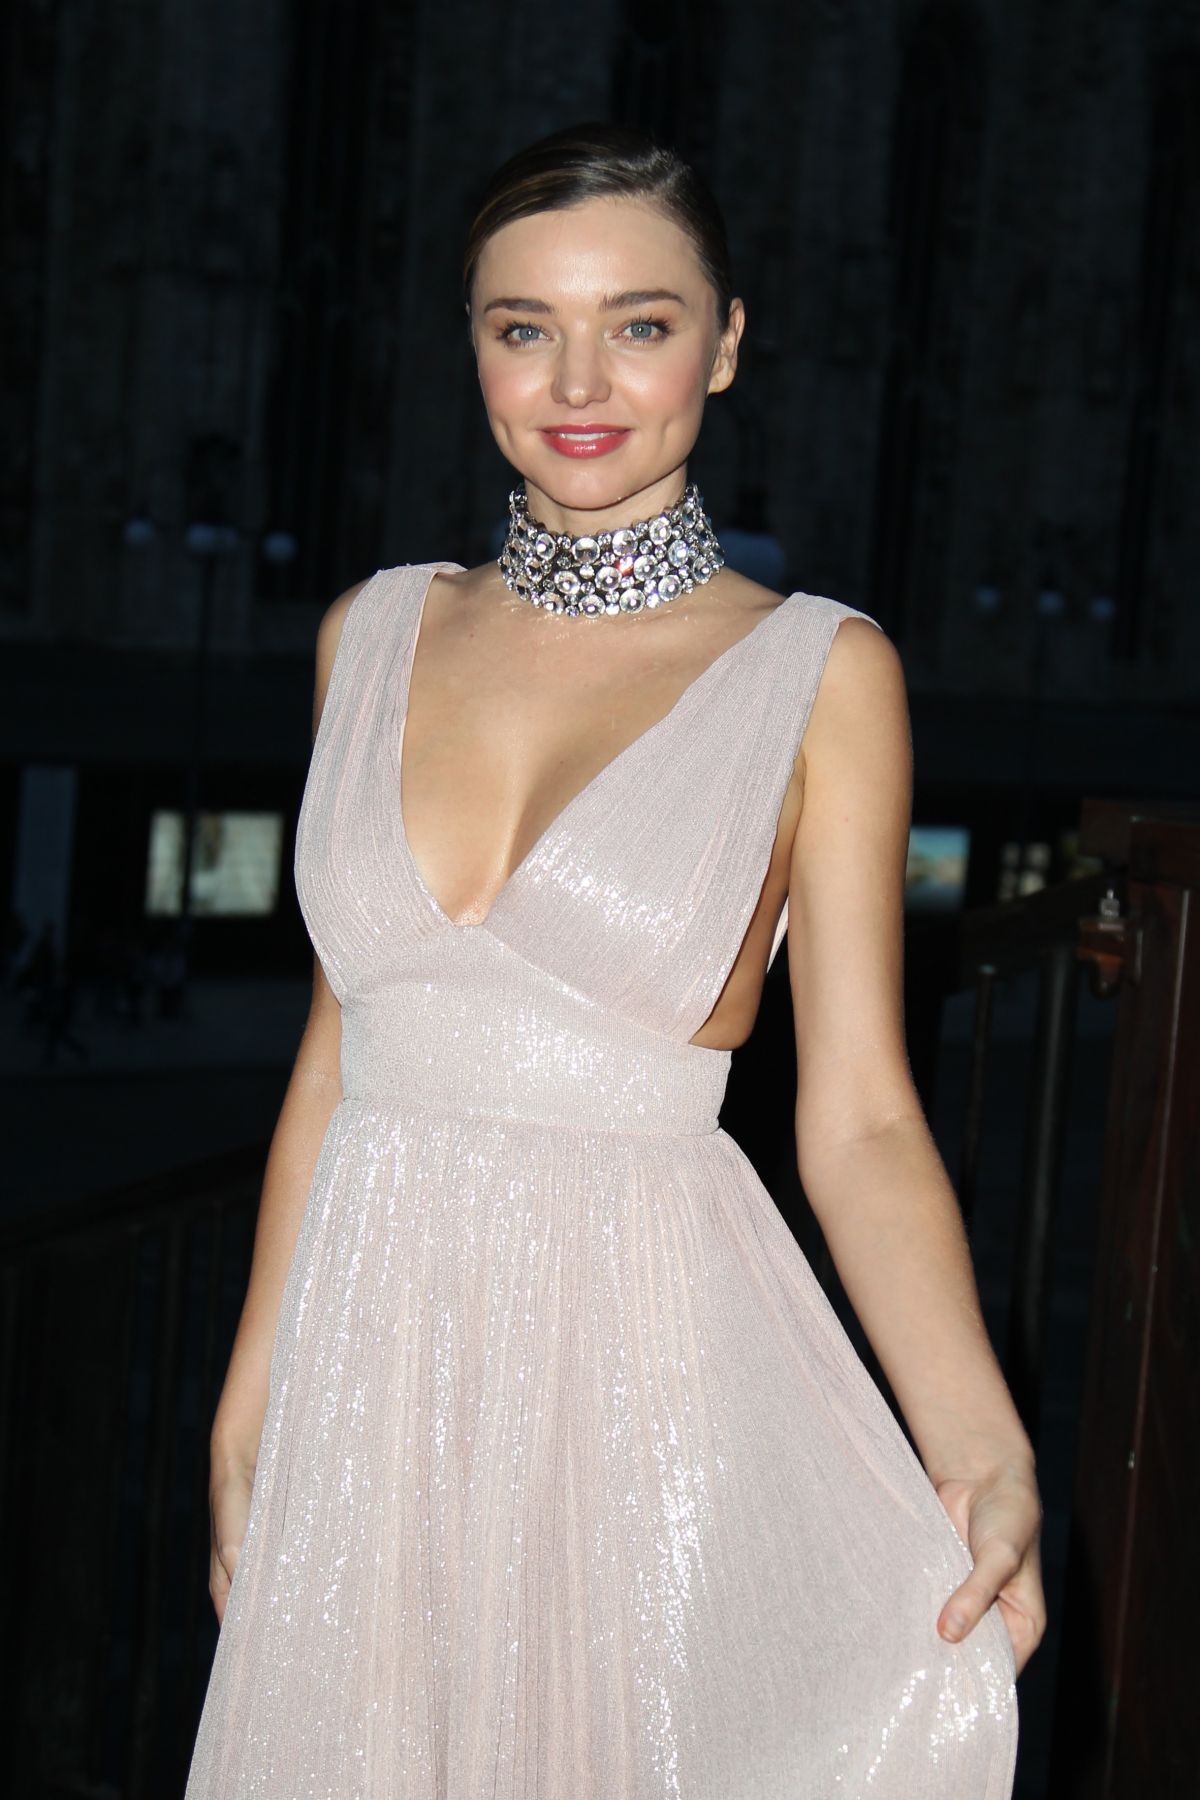 MIRANDA KERR at Koradior Fashion Show at Milan Fashion Week | Stunning ... Miranda Kerr